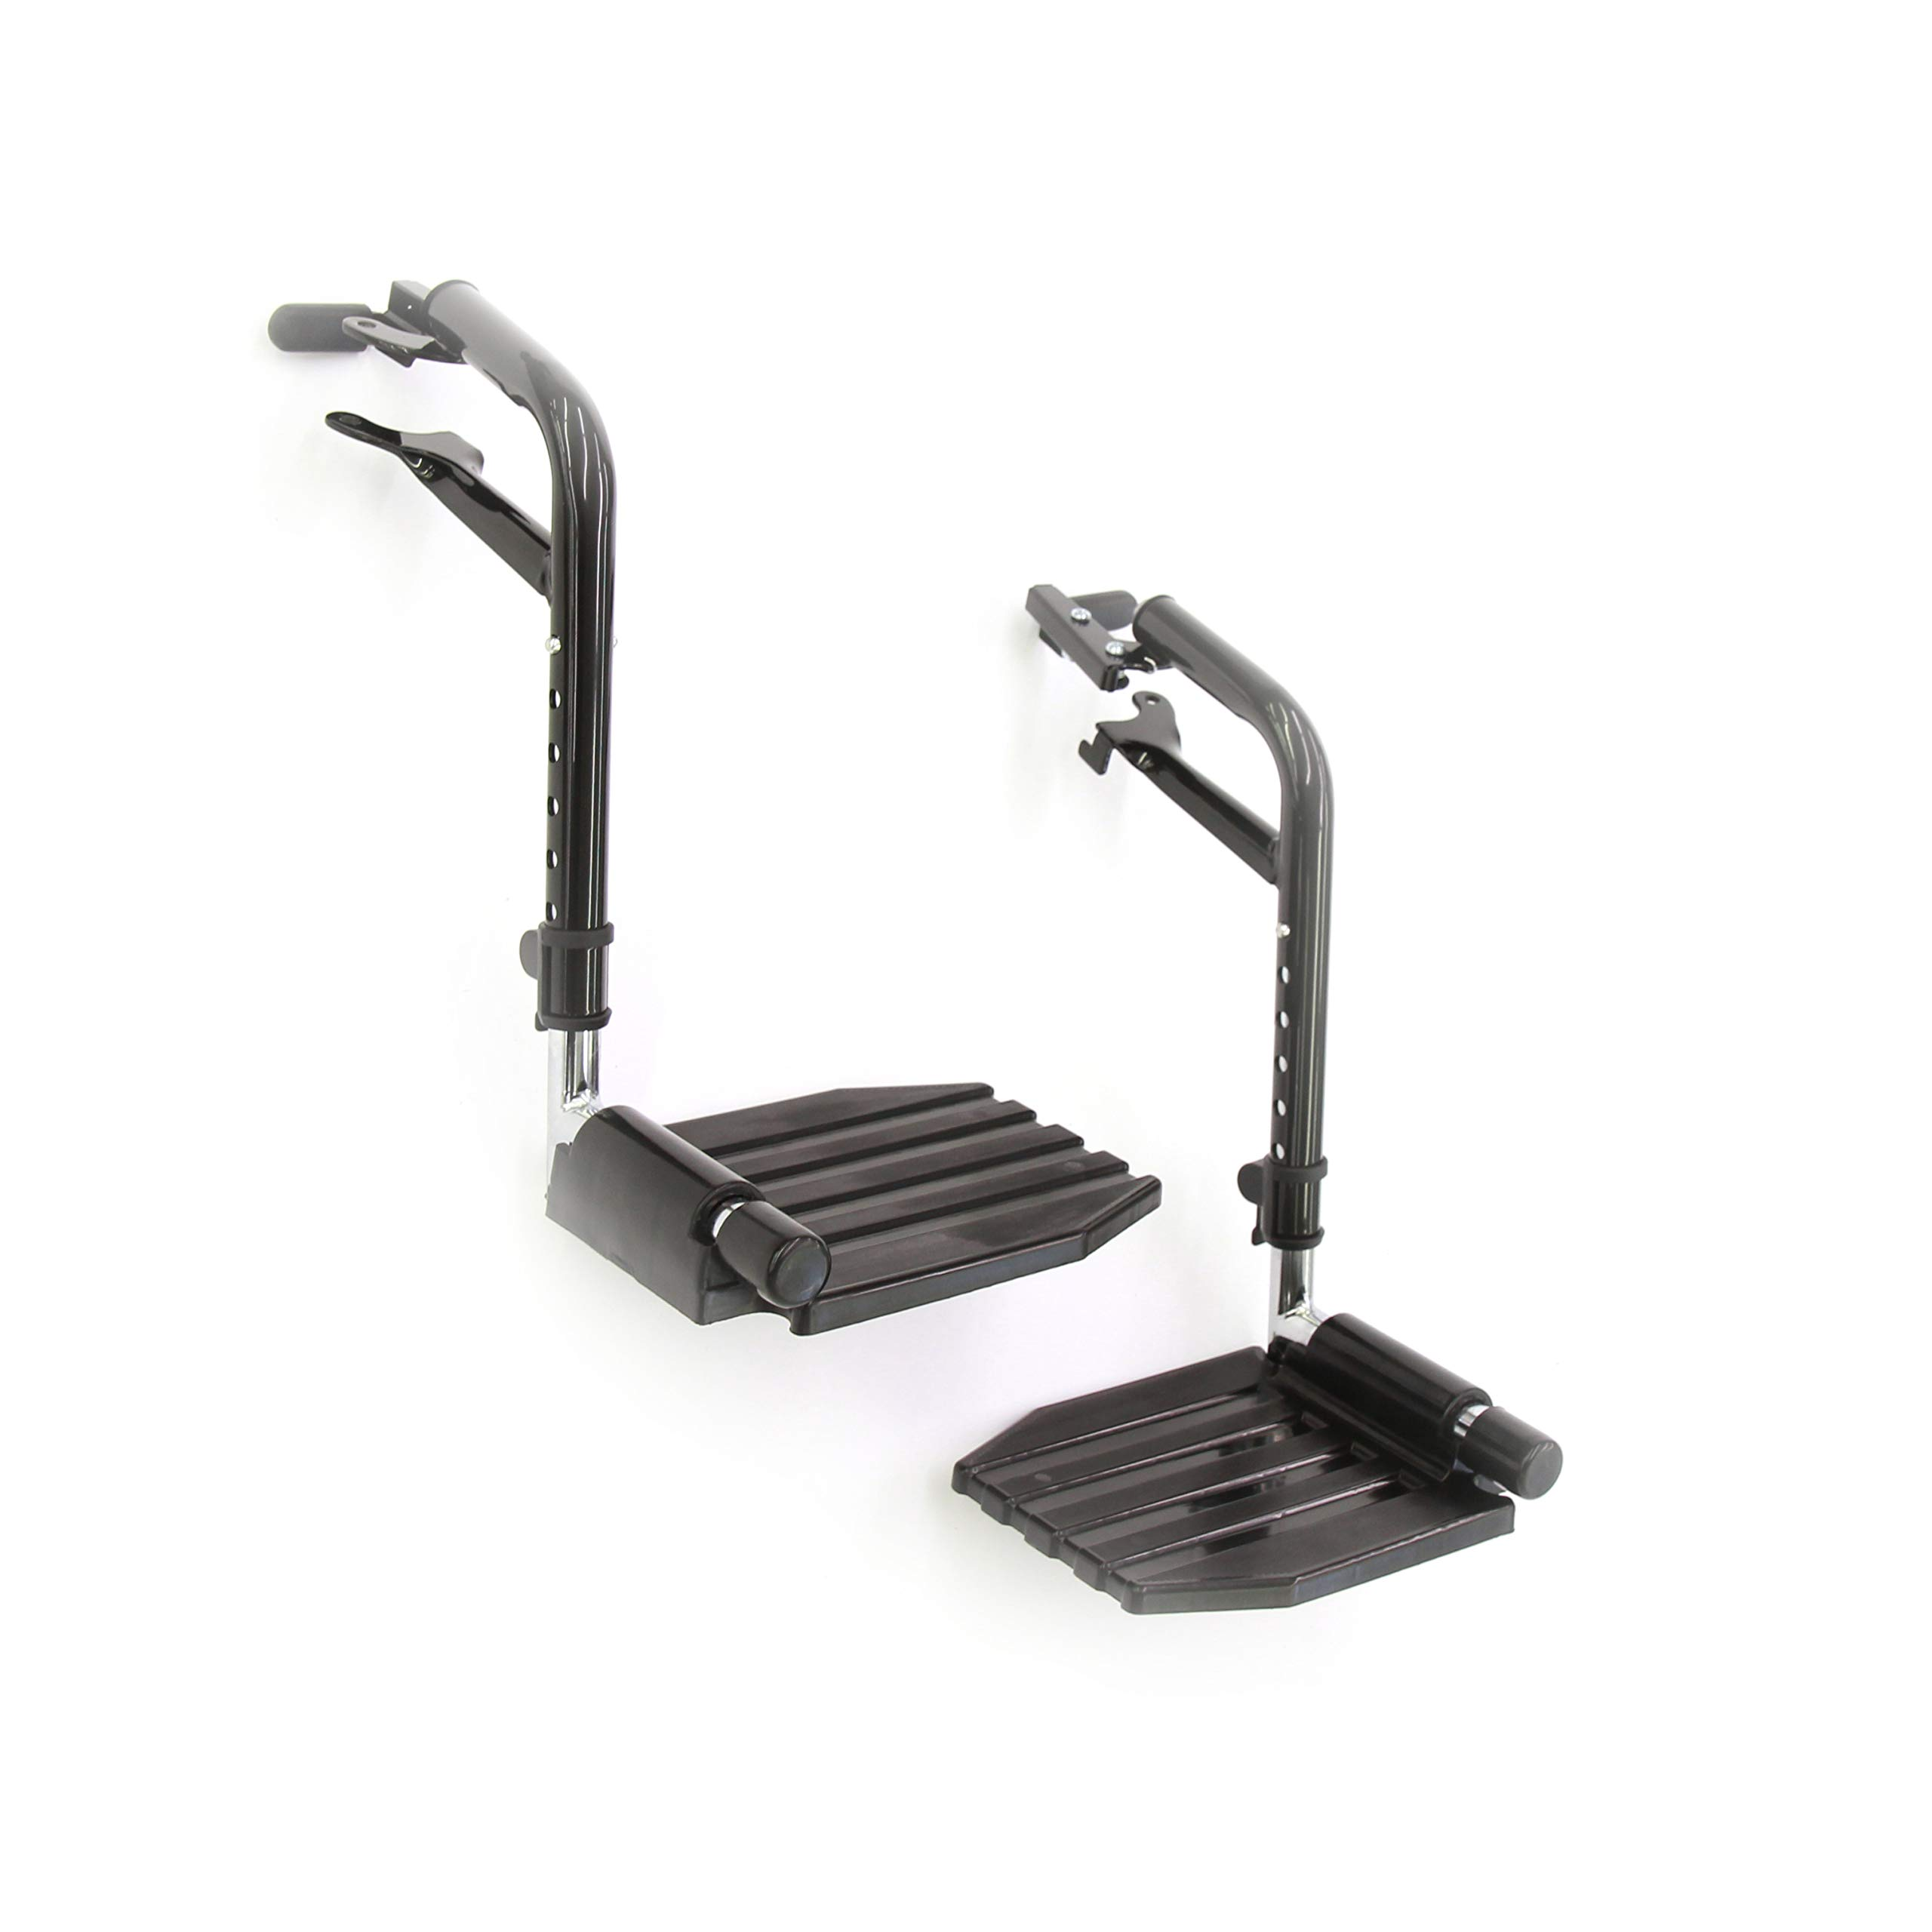 Invacare T93HEP Economy Footrest for Standard Wheelchairs by Invacare